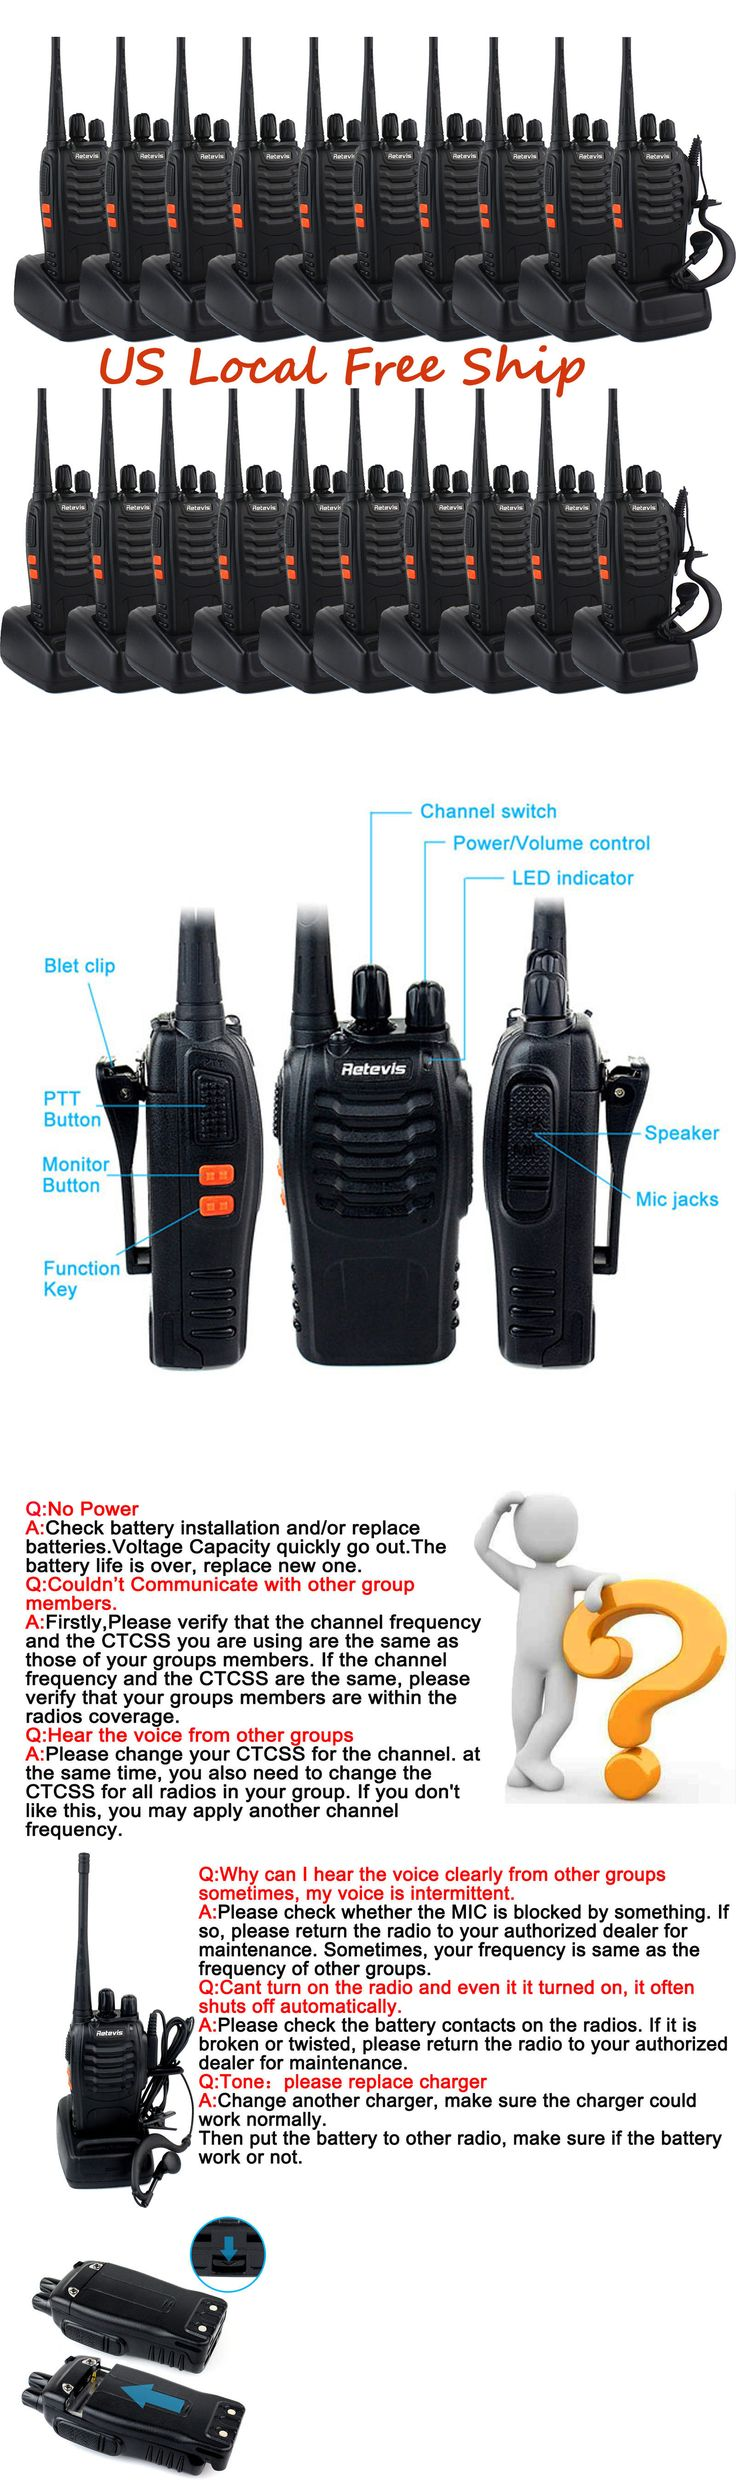 Walkie Talkies Two-Way Radios: 20Pc Retevis H-777 Walkie Talkie Uhf: 400-470Mhz 16Ch 5W Two-Way Radio Us Stock -> BUY IT NOW ONLY: $216.19 on eBay!